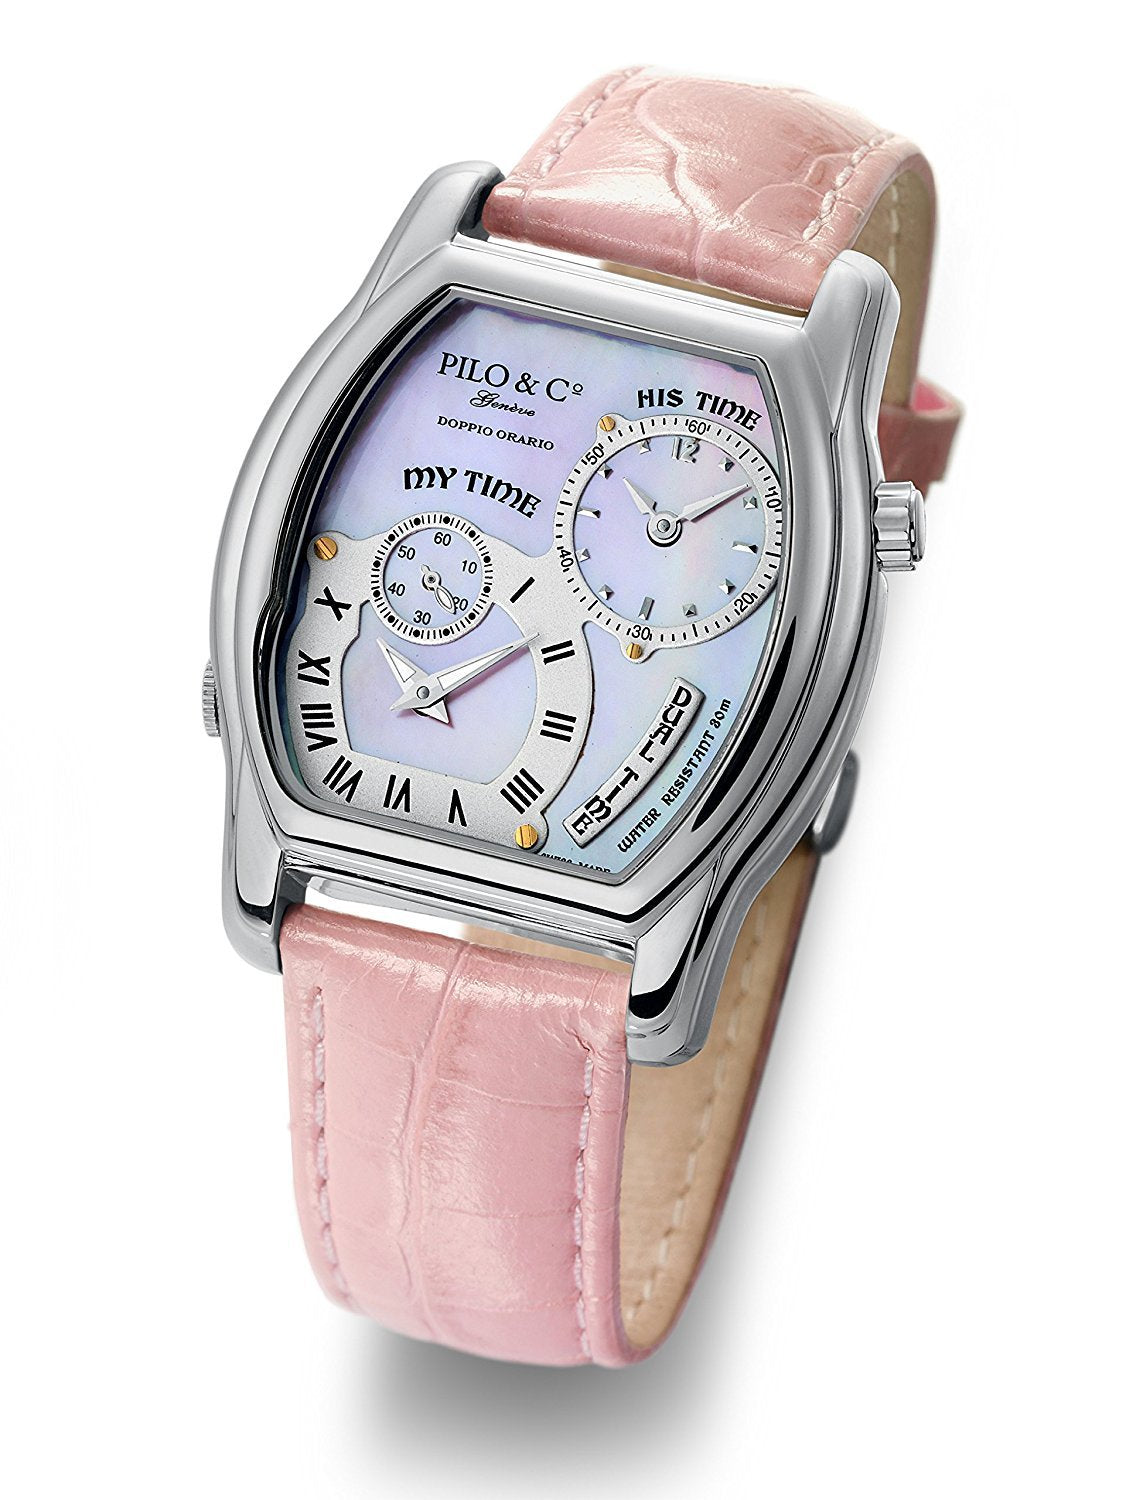 Pilo & Co Geneva Swiss Quartz Doppio Orario Women's Watch collection P0306DQS